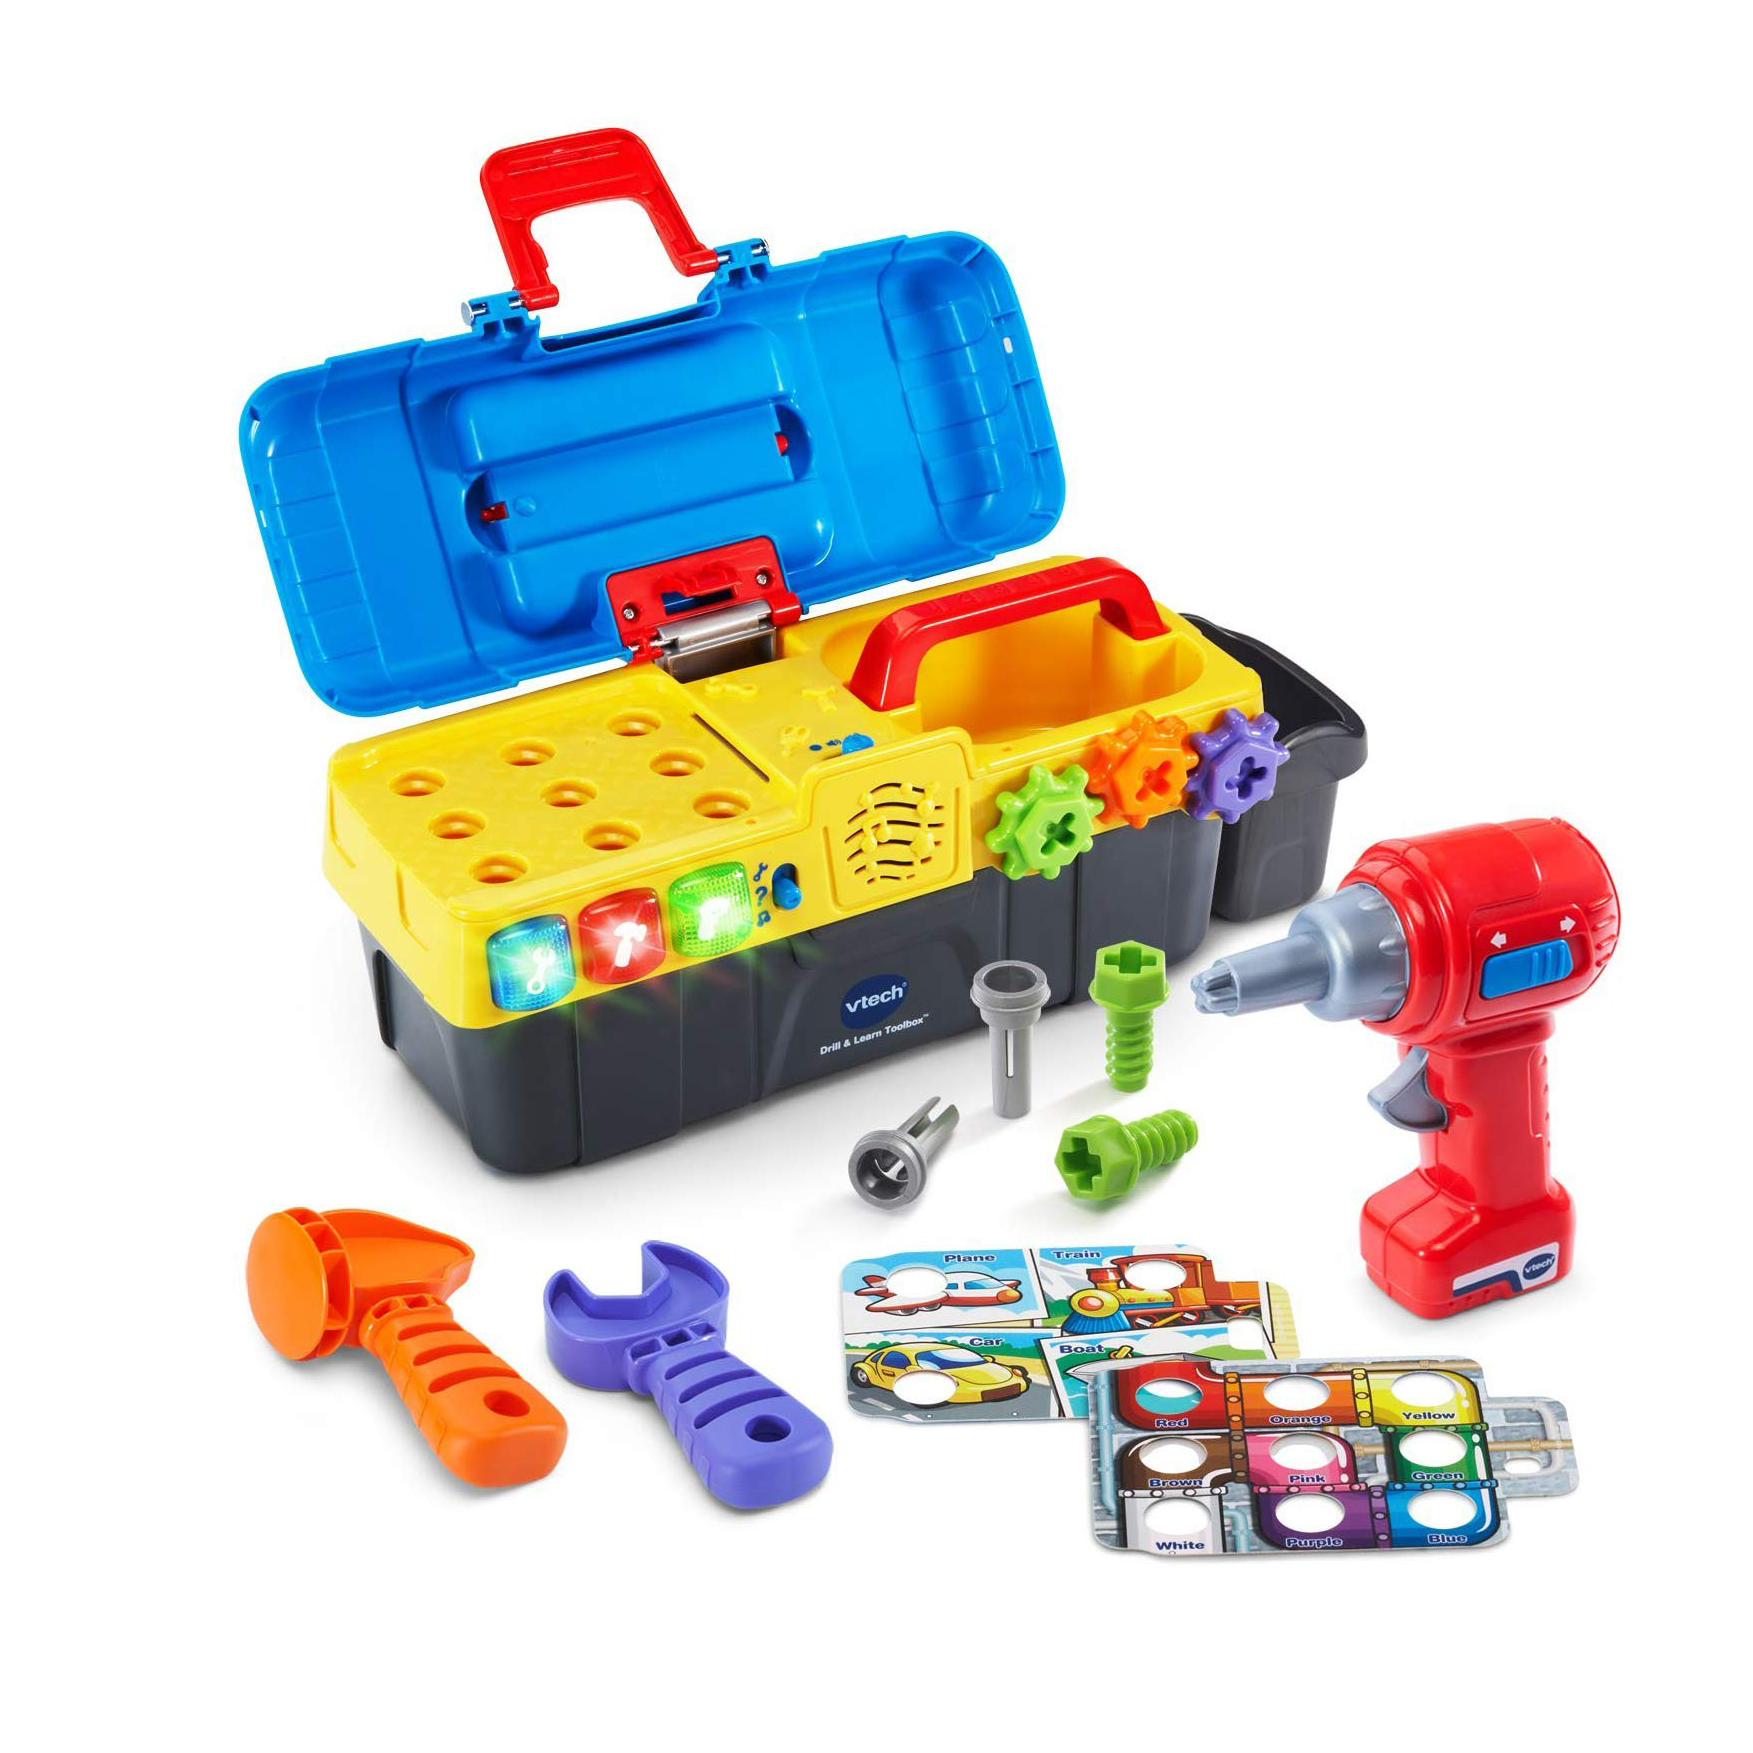 Cool gifts for kids - Vtech Drill & Learn Toolbox